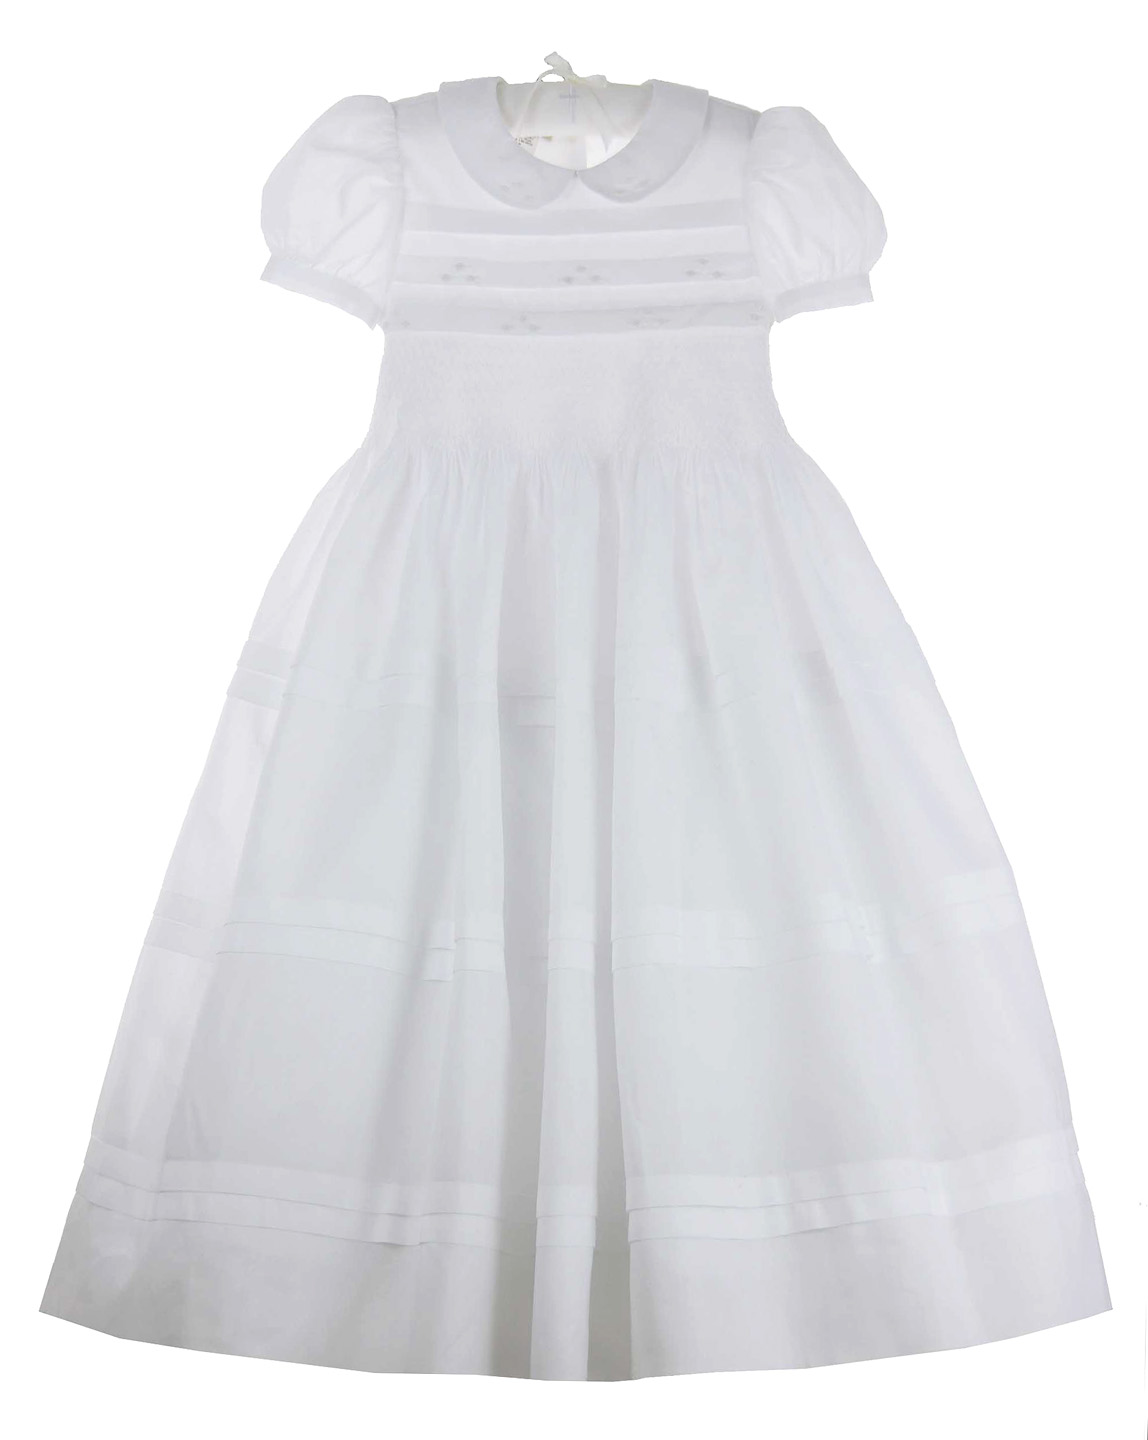 Marco Amp Lizzy White Cotton Dress With Smocking And